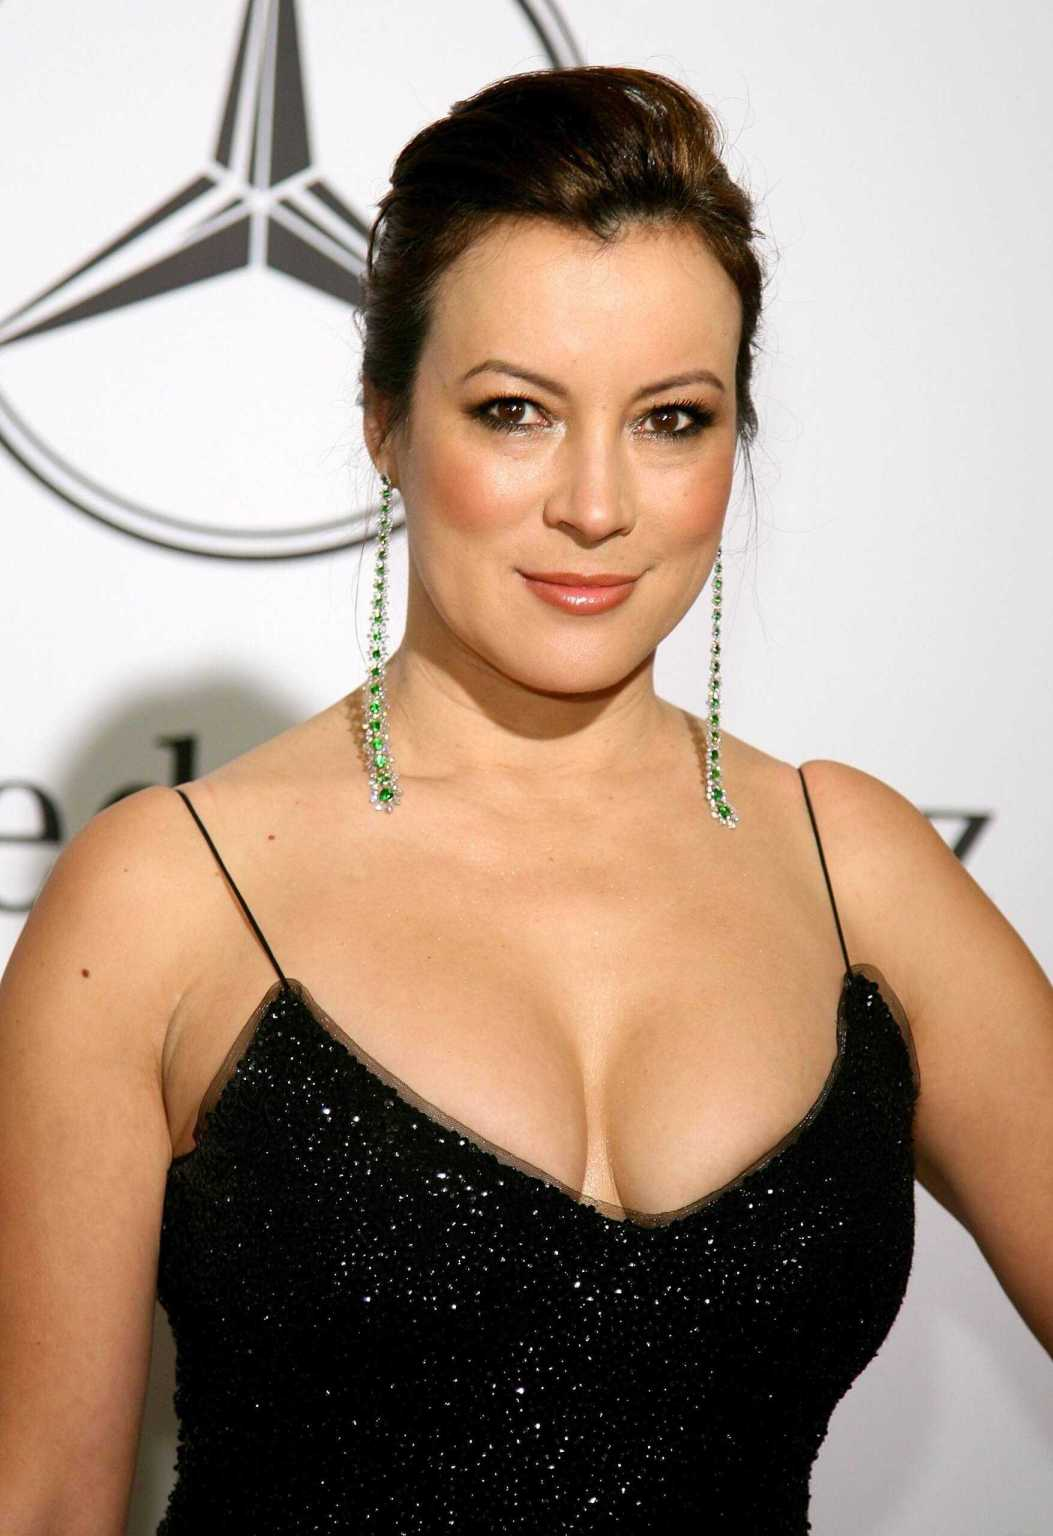 51 Jennifer Tilly Nude Pictures Are An Exemplification Of